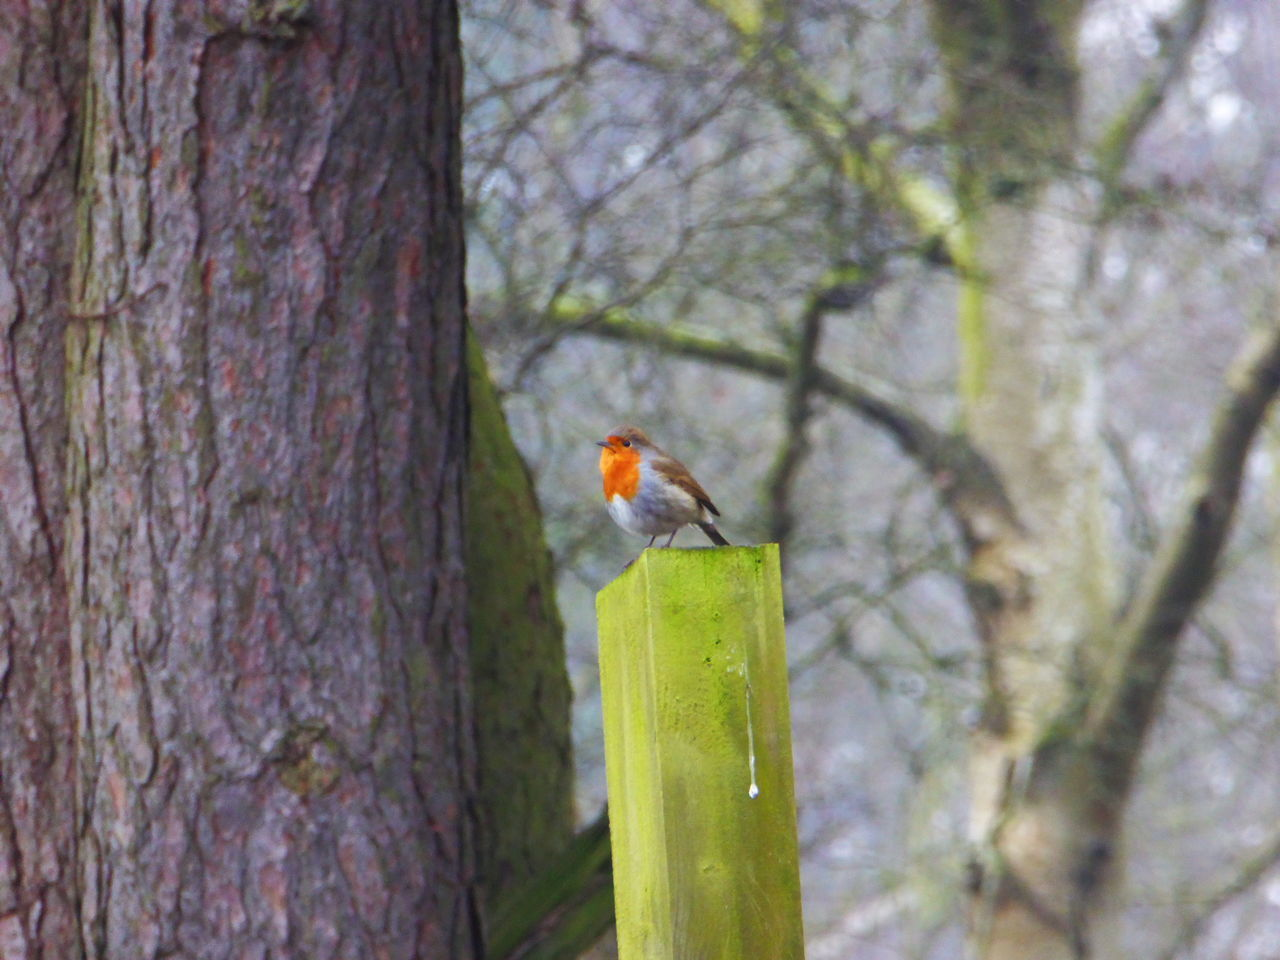 Thats enough for today & at the end this little beauty to say goodbye 🤗💕 Robin Robin Redbreast One Animal Animal Themes Bird Animals In The Wild Animal Wildlife Focus On Foreground Nature No People Wood - Material Outdoors Perching